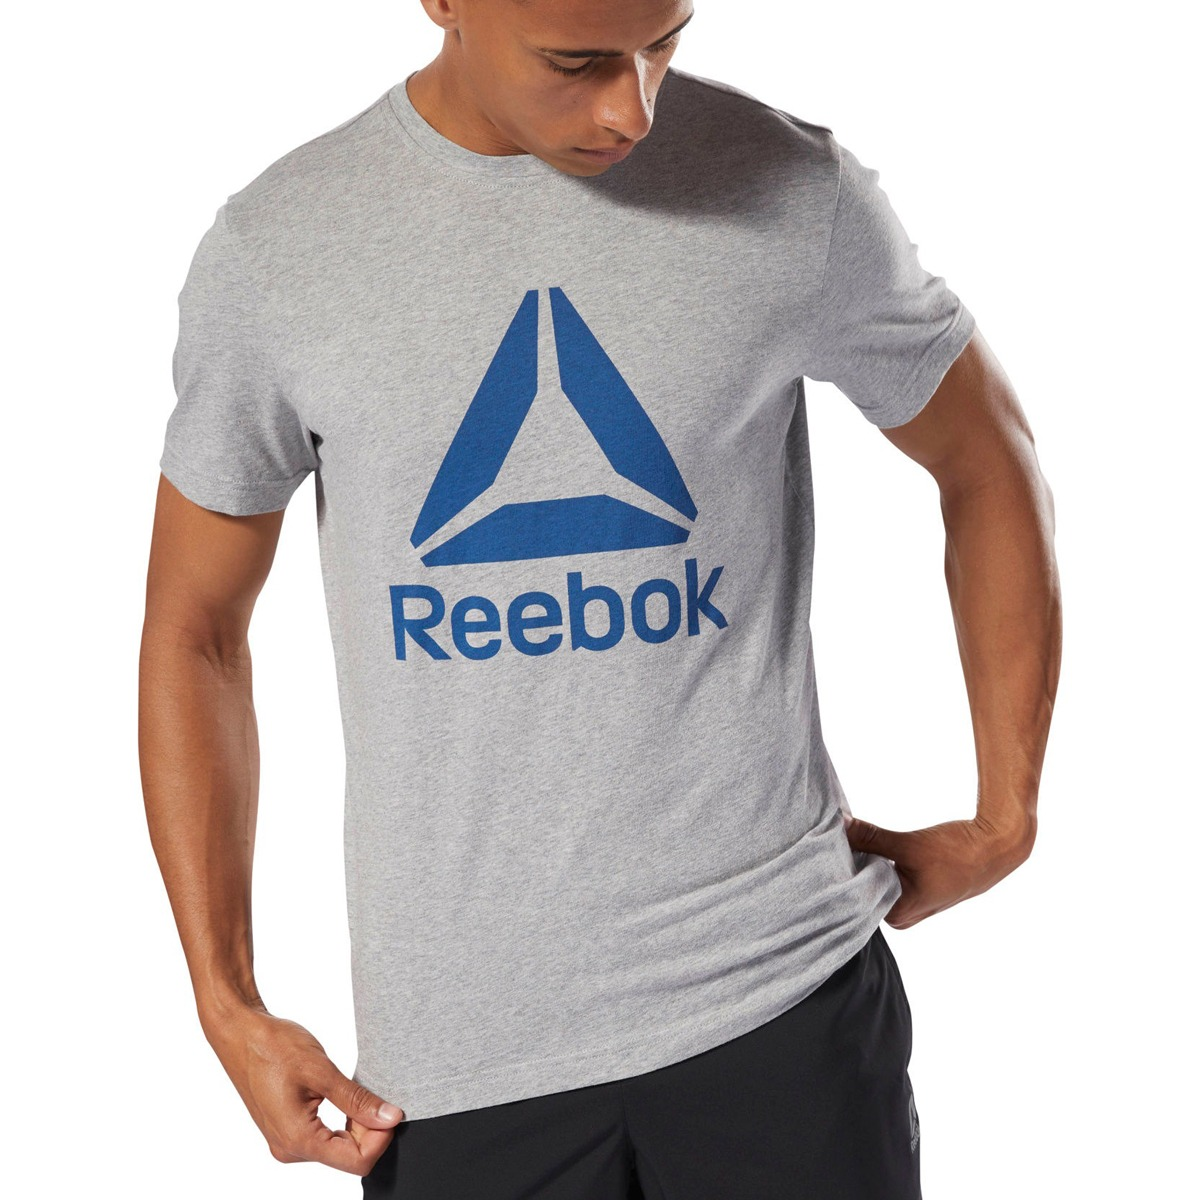 a16295089 remera reebok training qqr stacked hombre gr. Cargando zoom.